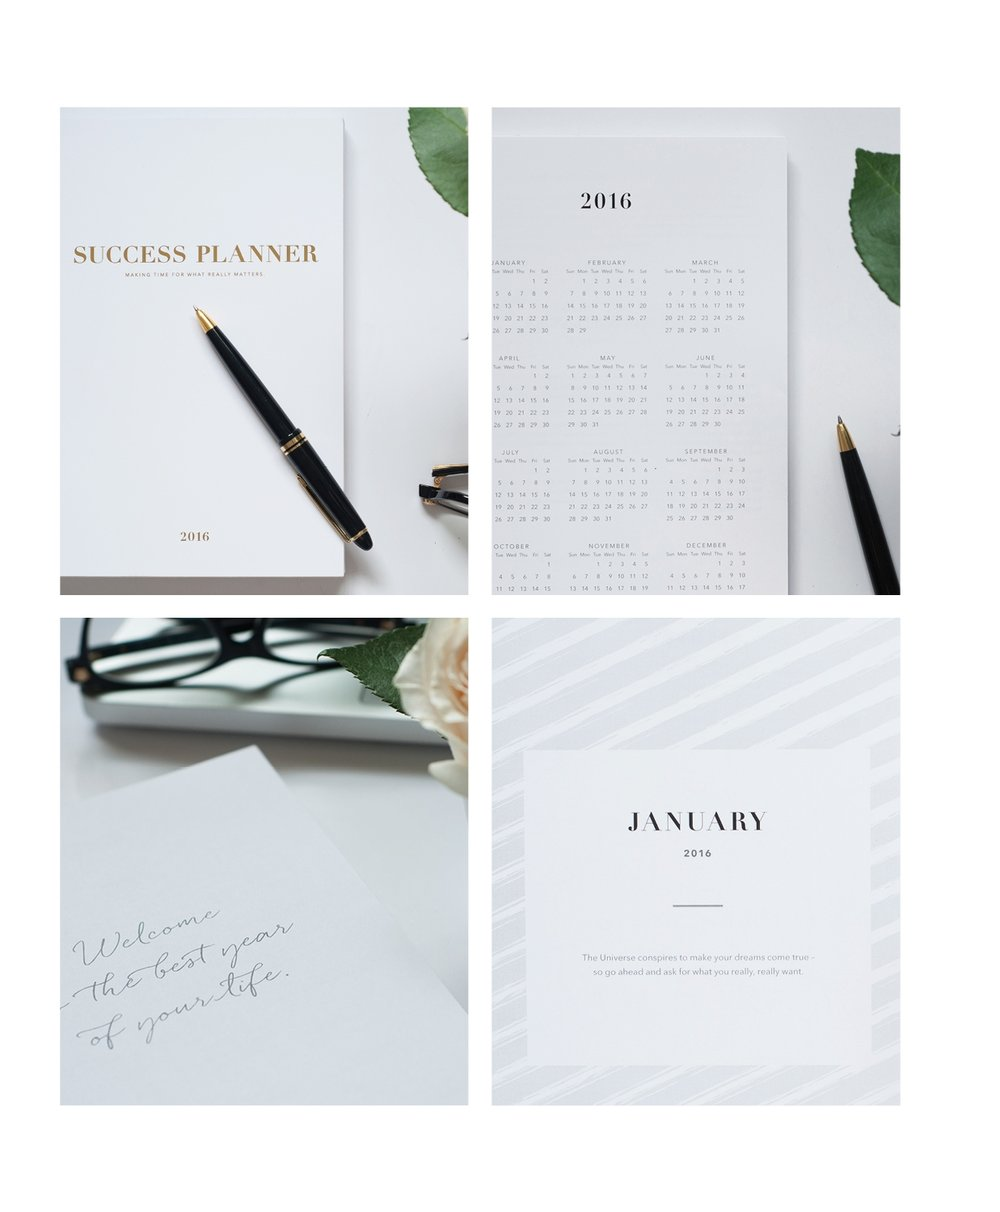 Copywriting of a calendar year, Success Planner.